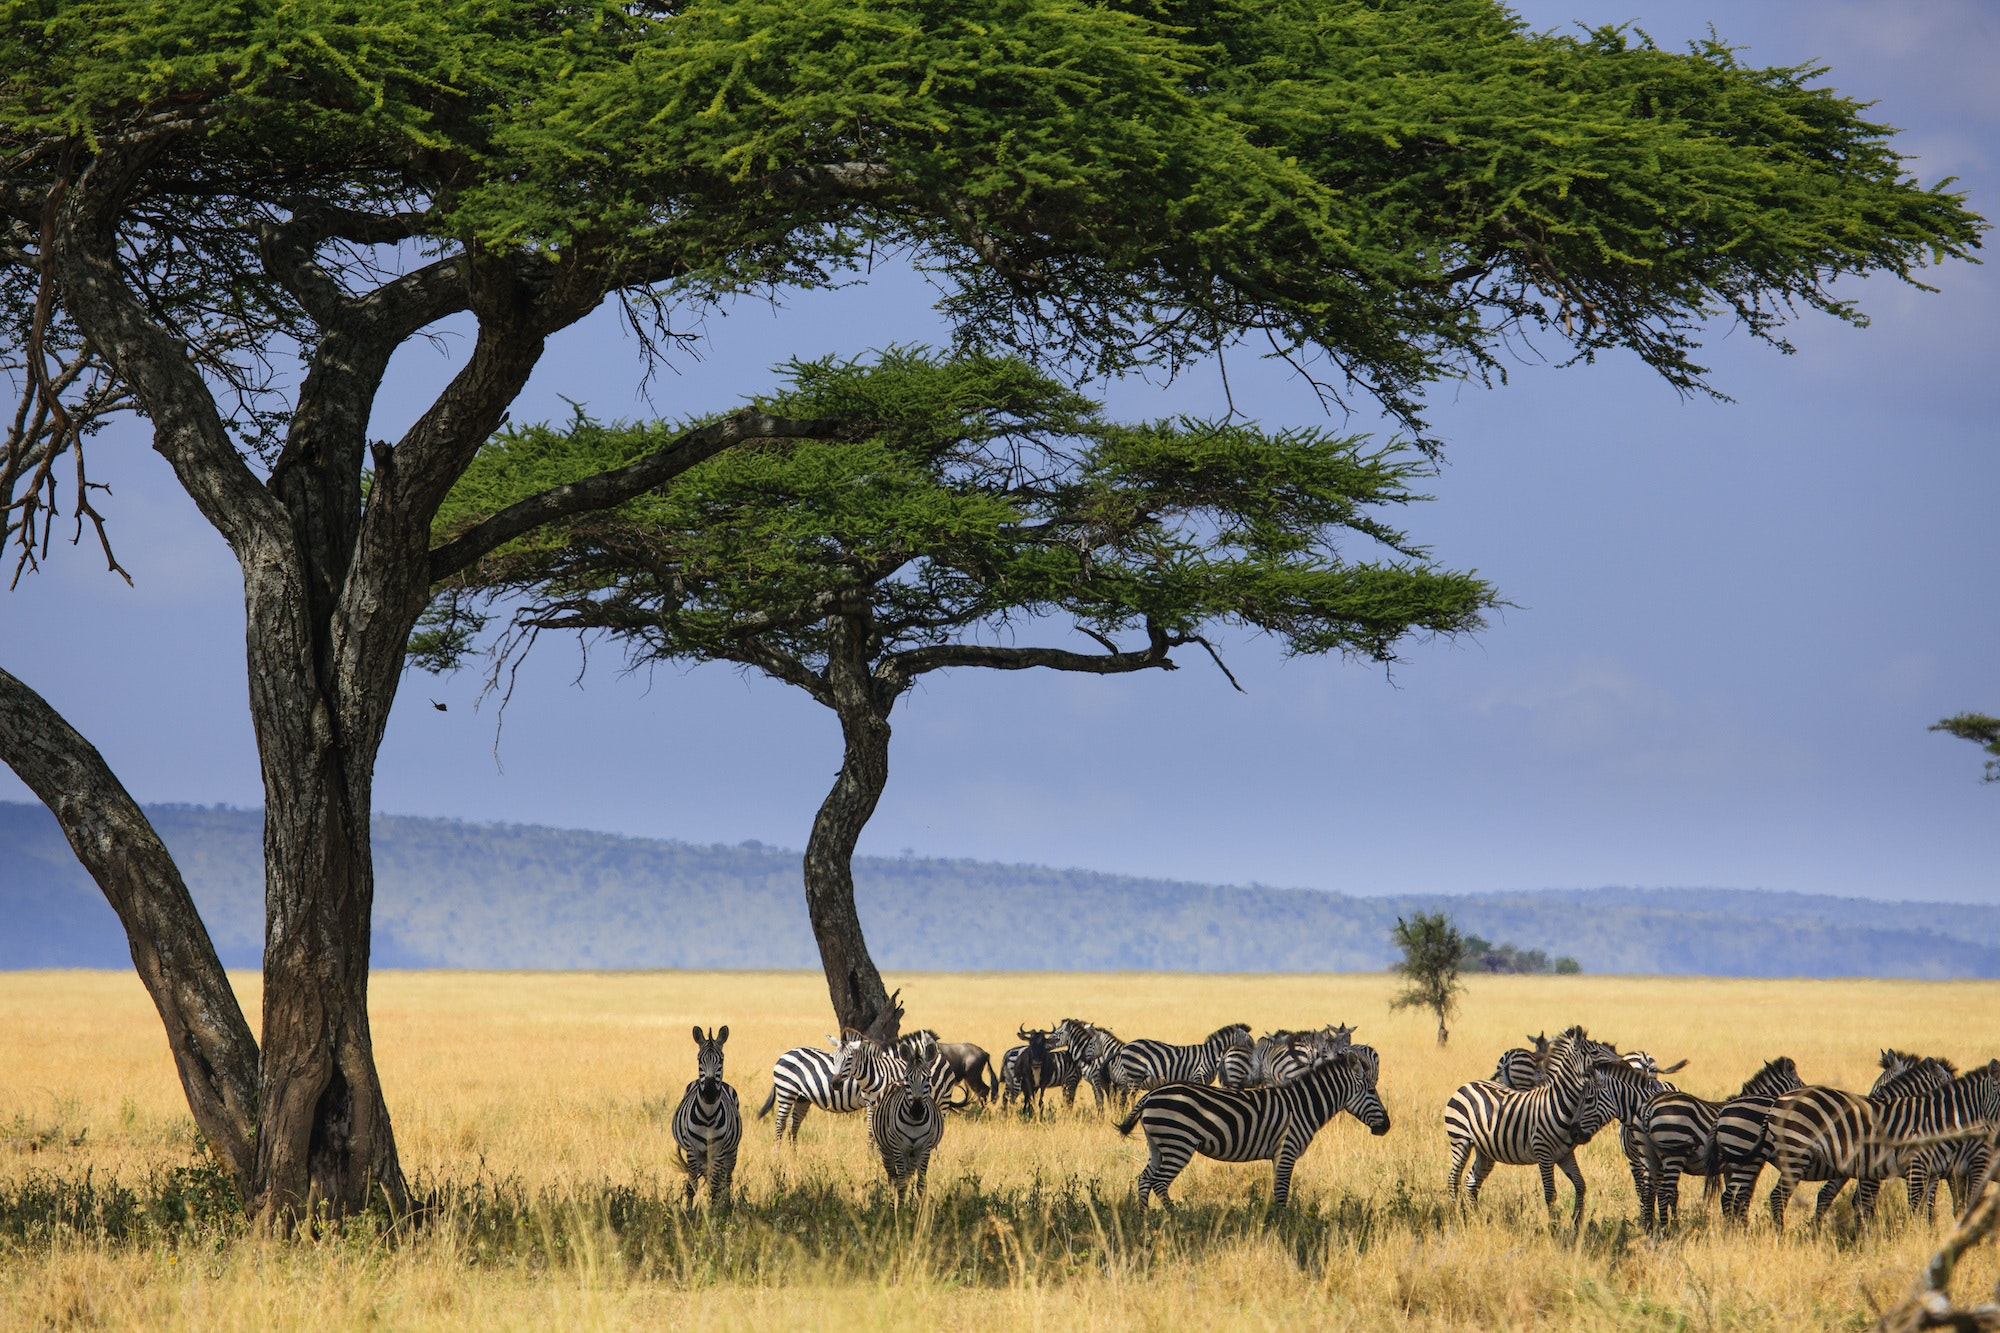 Zebras, wildebeests, and gazelles make annual migrations across Serengeti National Park—followed by their predators.